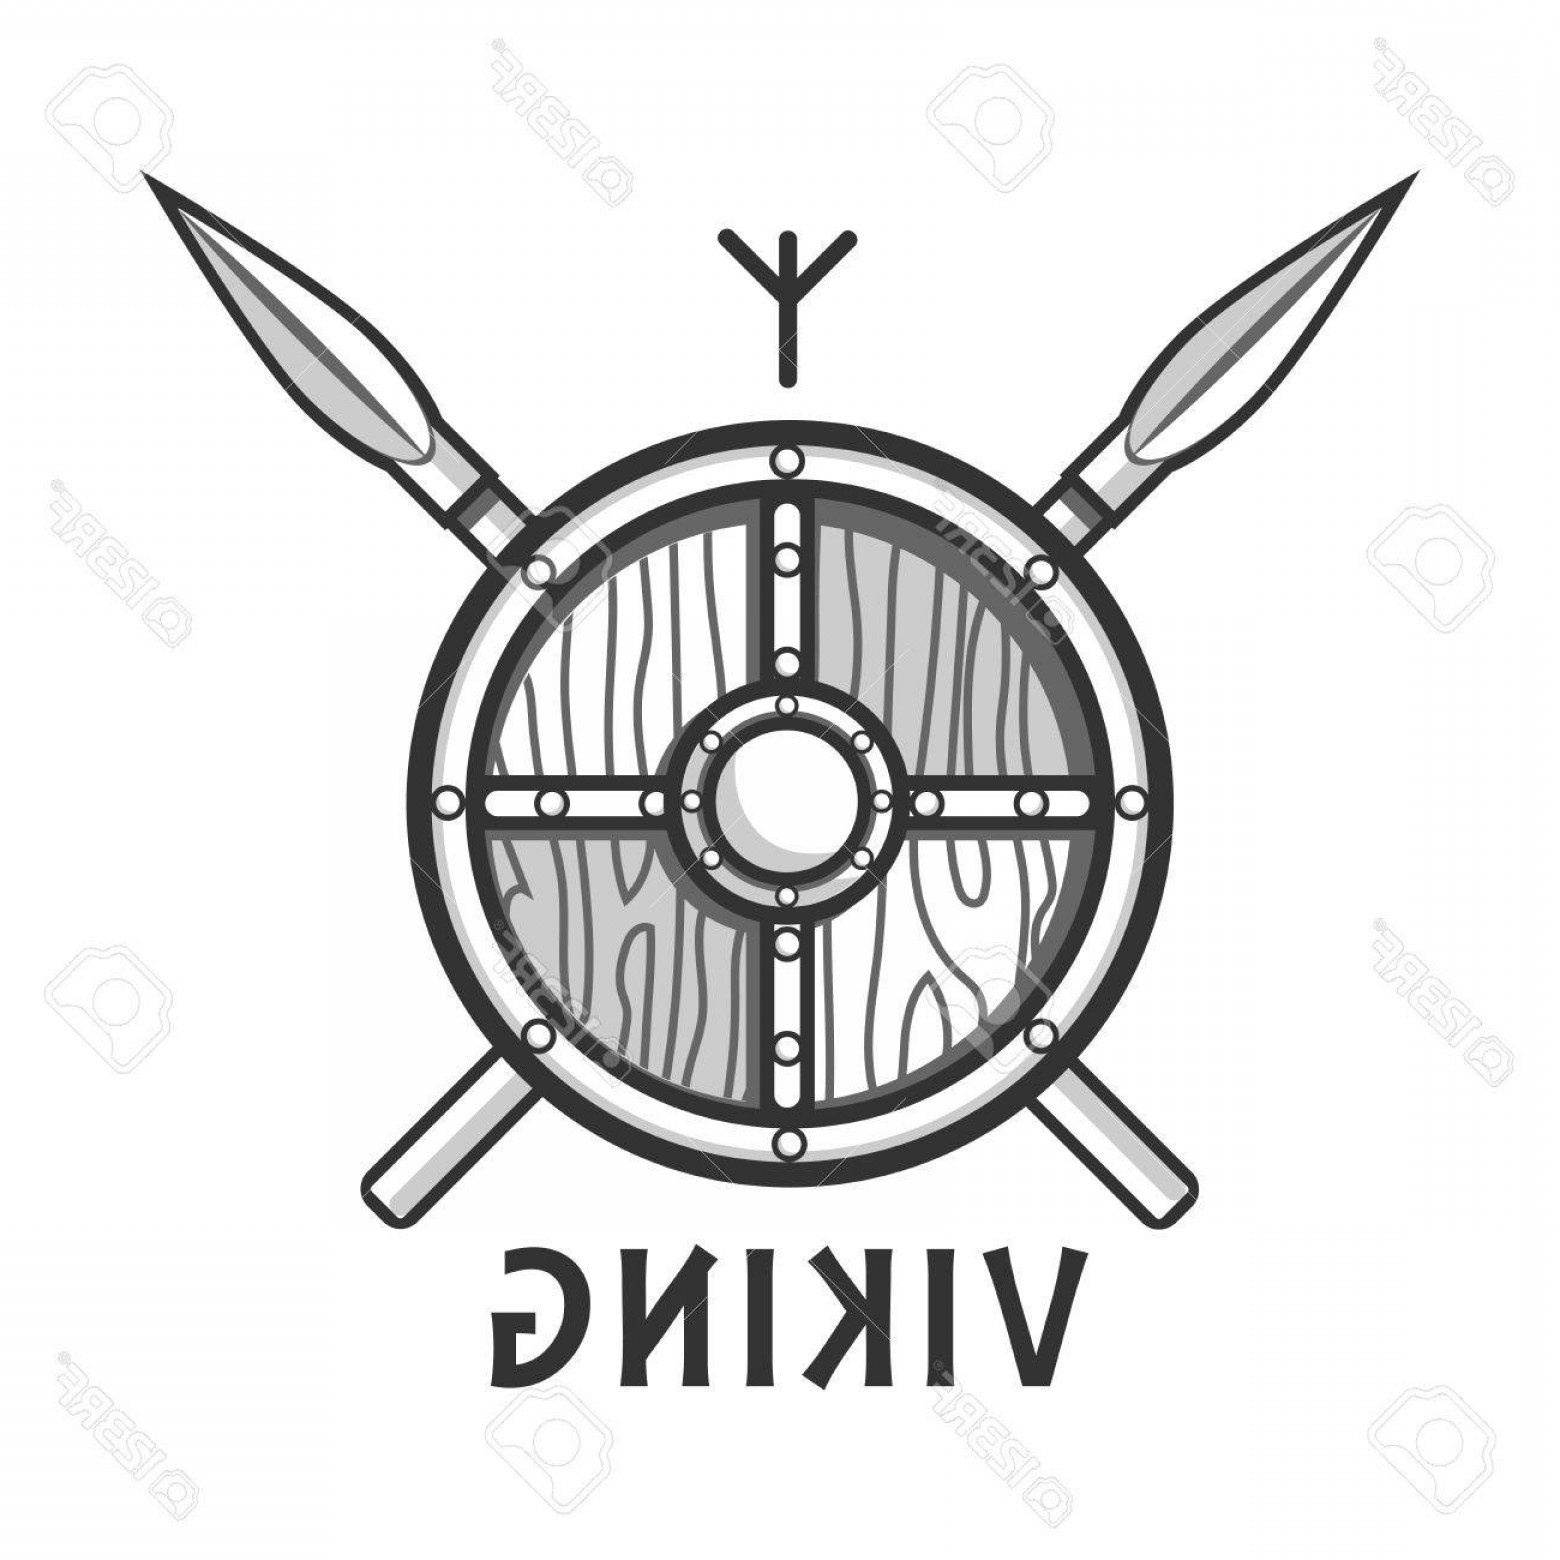 1560x1560 Photostock Vector Vikings Shield With Two Crossed Spears And Small